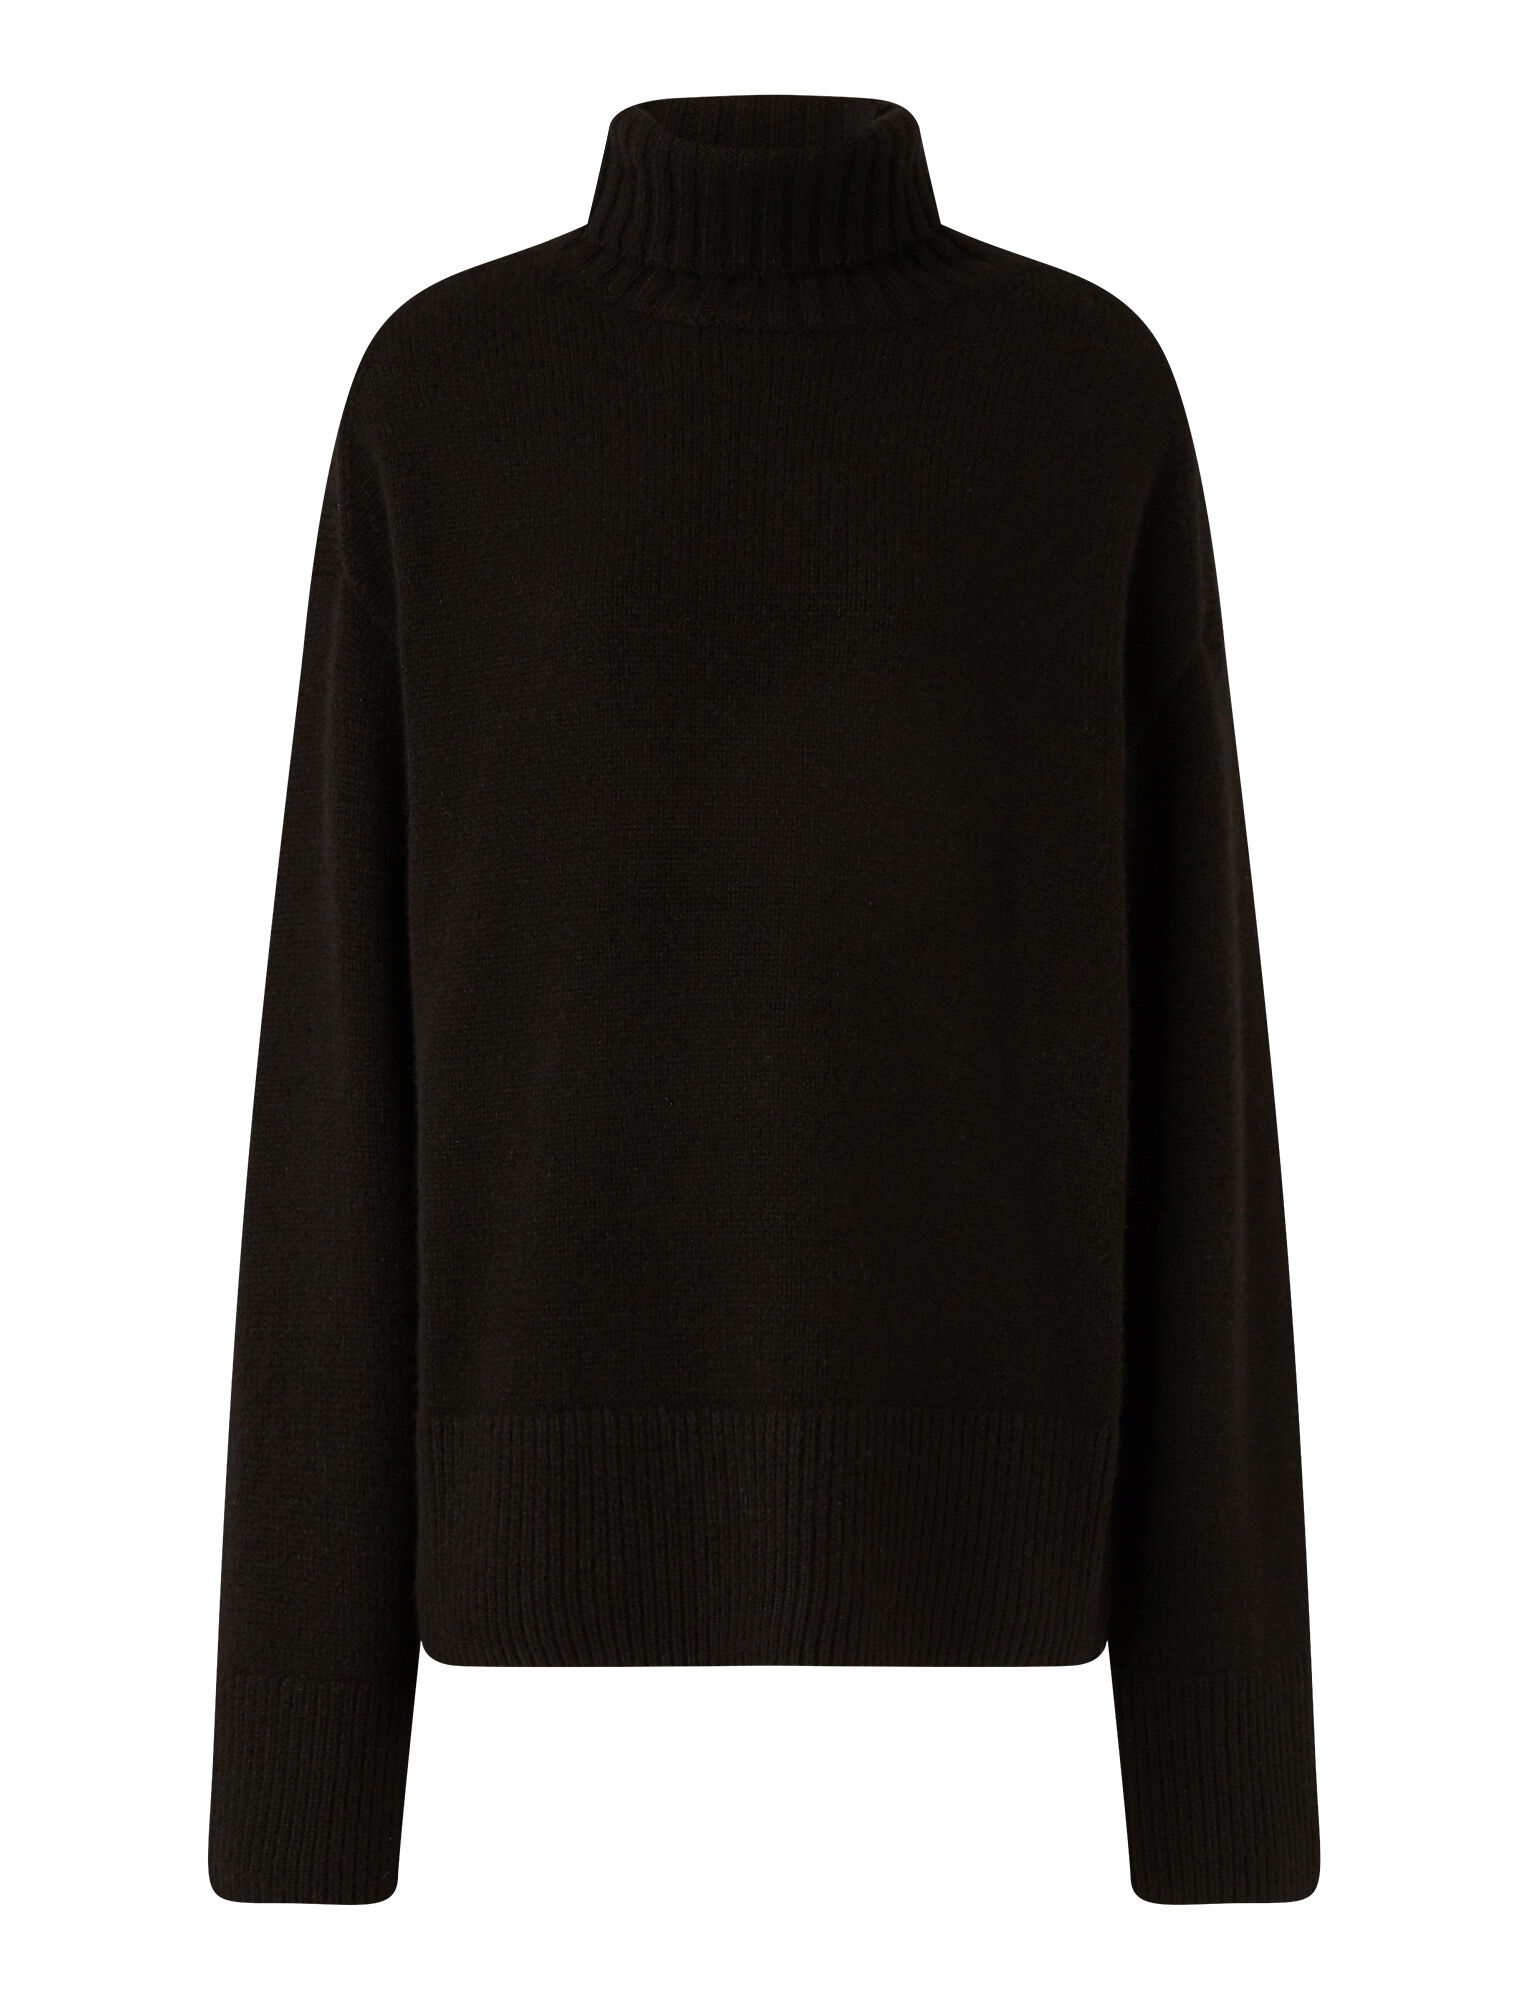 Joseph, High Neck Luxe Cashmere Knit, in Black